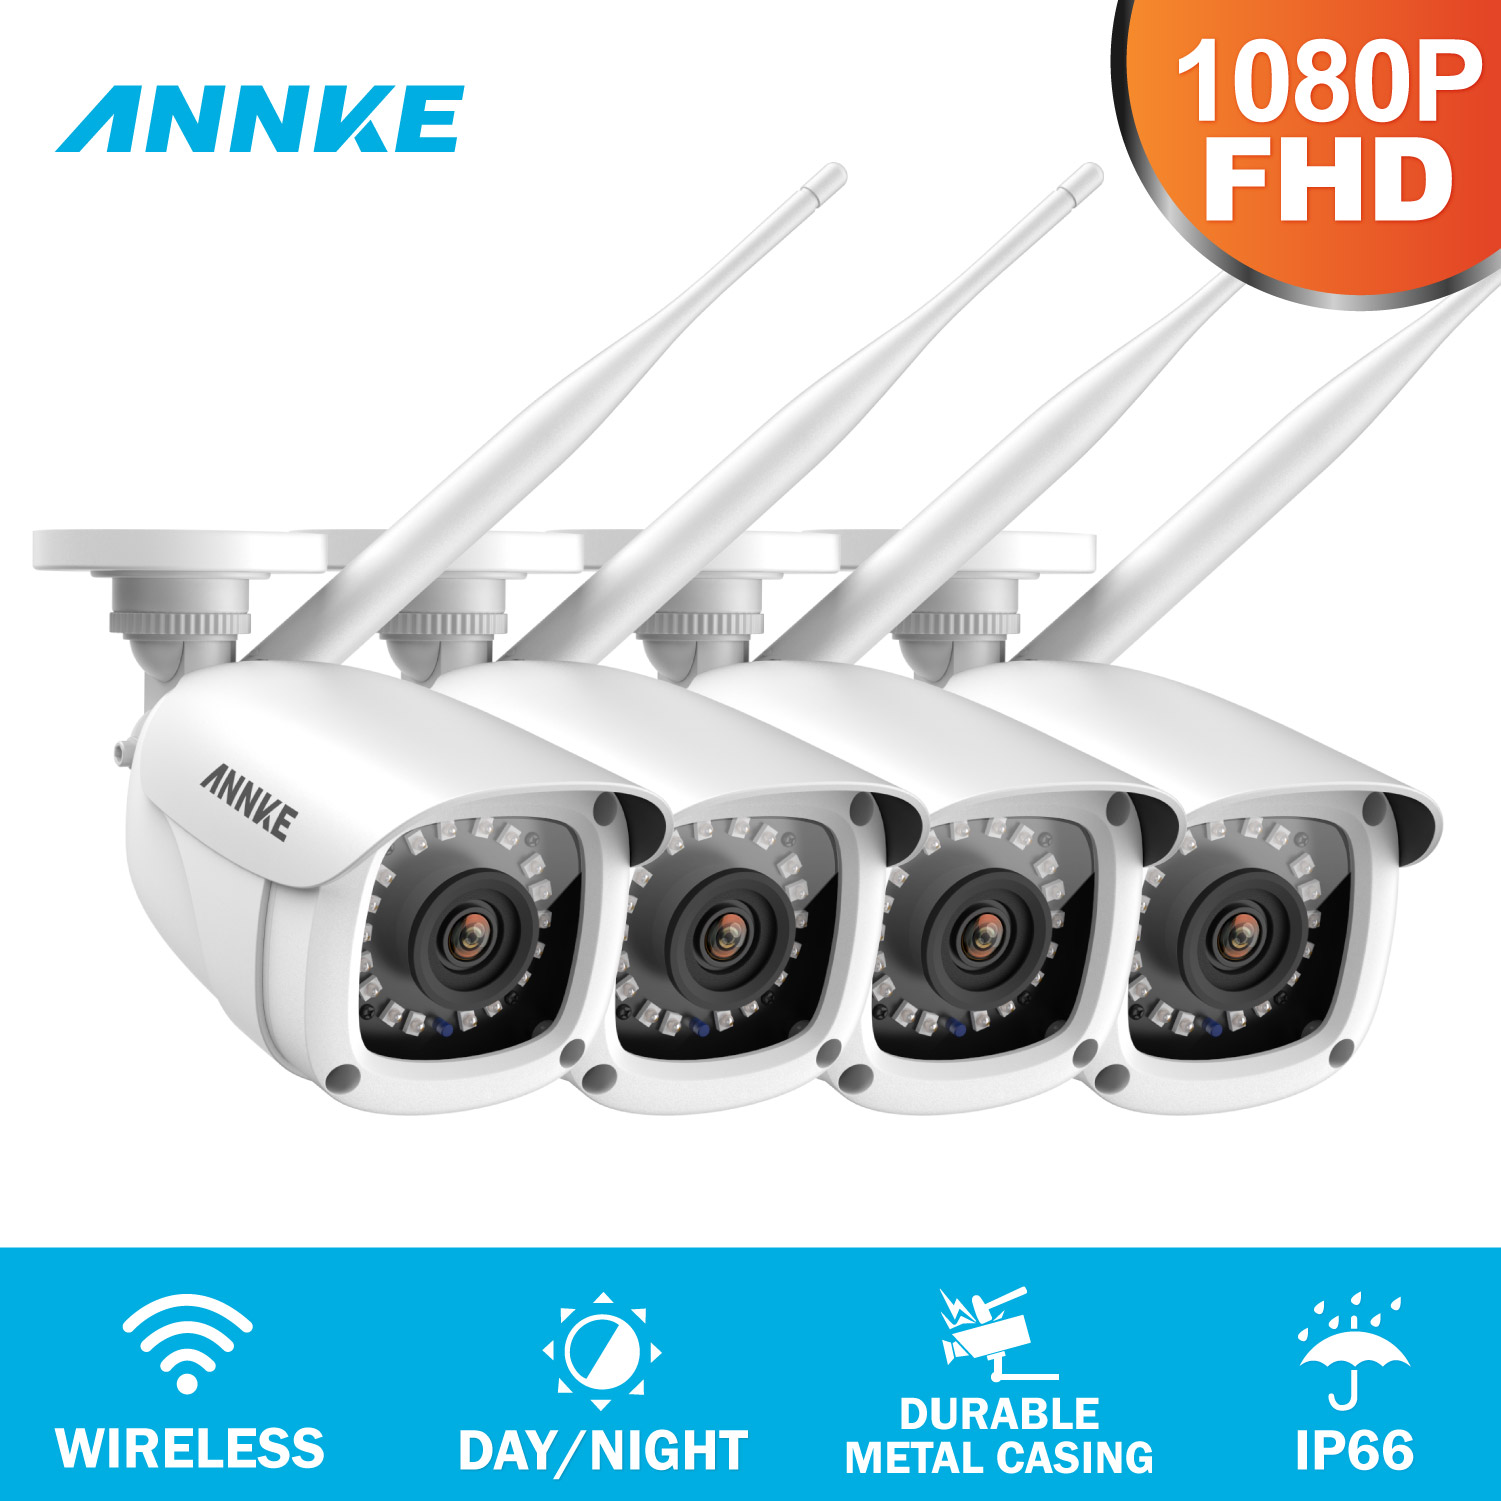 ANNKE 2X 4X 1080P FHD Wireless Video Security IP Camera Outdoor Bullet Weatherproof CCTV Camera 100ft Night Vision With Smart IR